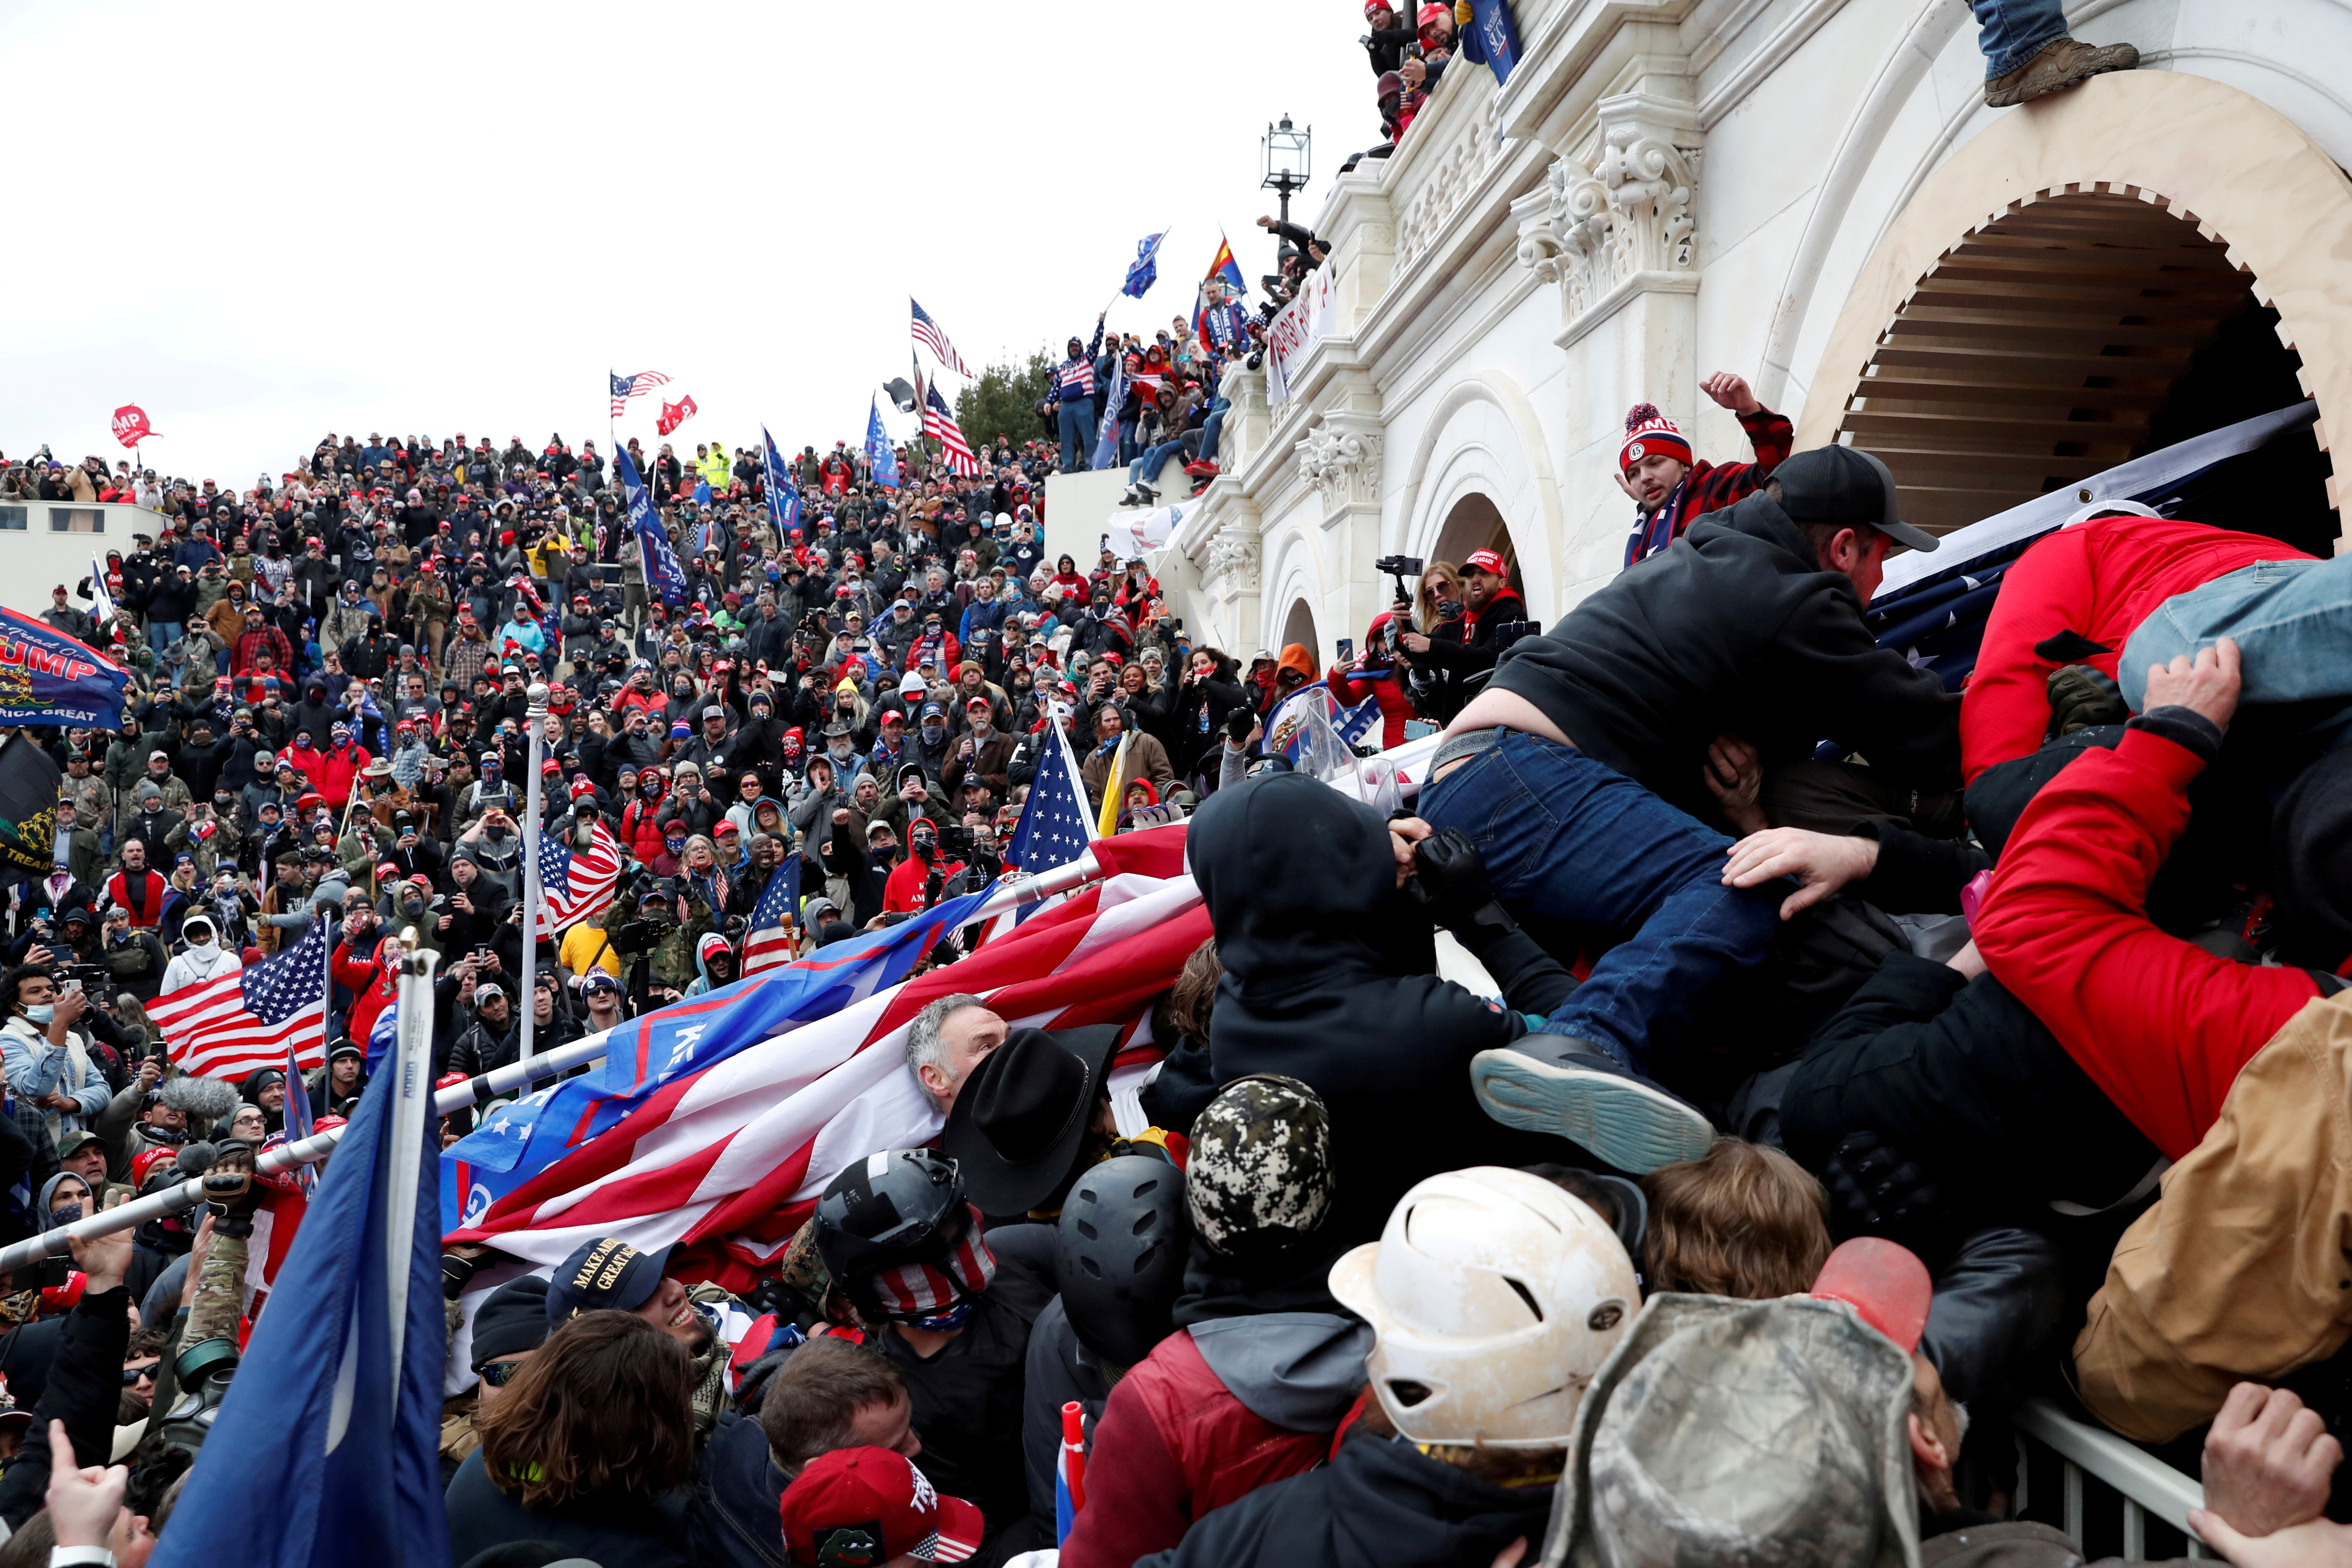 Pro-Trump protesters storm into the U.S. Capitol during clashes with police, during a rally to contest the certification of the 2020 U.S. presidential election results by the U.S. Congress, in Washington, U.S, January 6, 2021. REUTERS/Shannon Stapleton